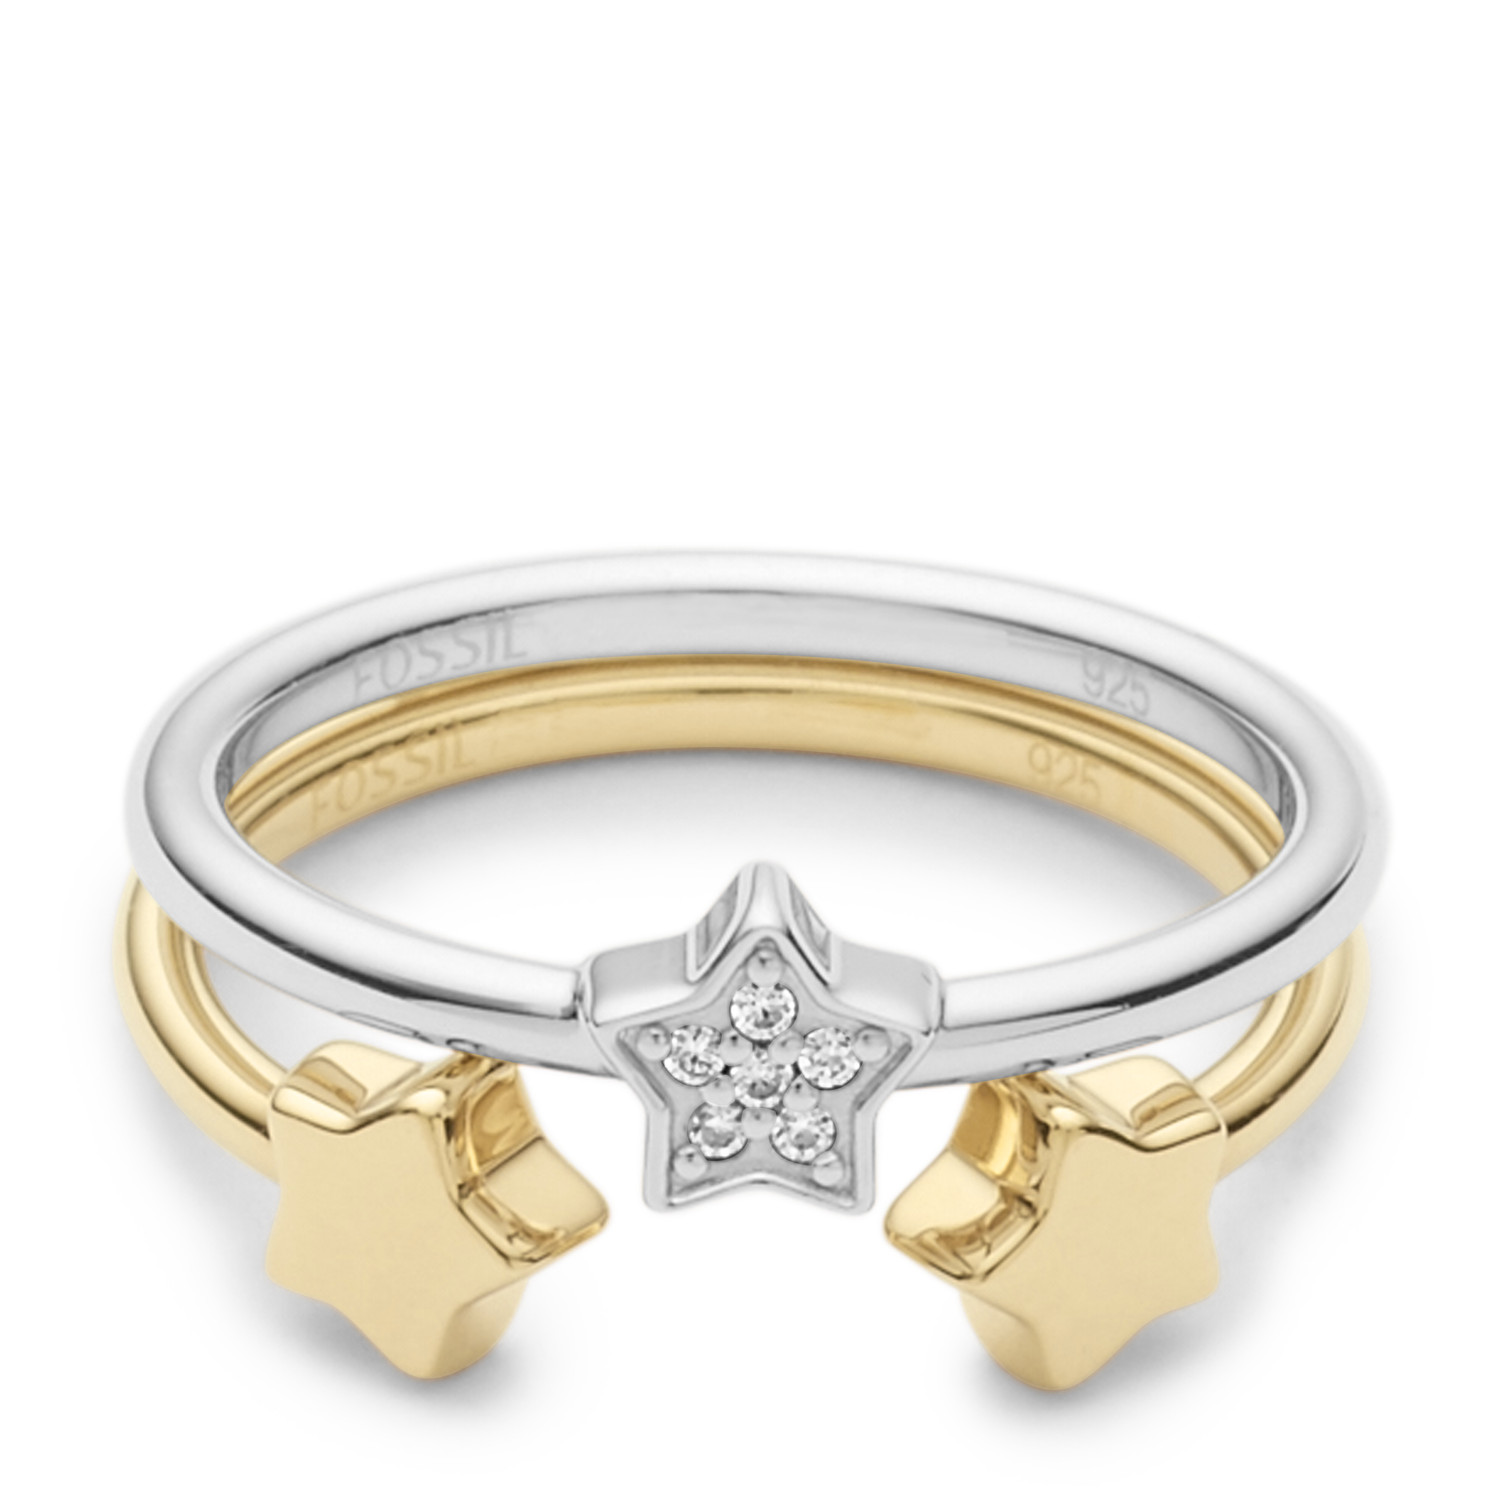 star rings products fullsizerender alexis stacked of kletjian three lucky set ring